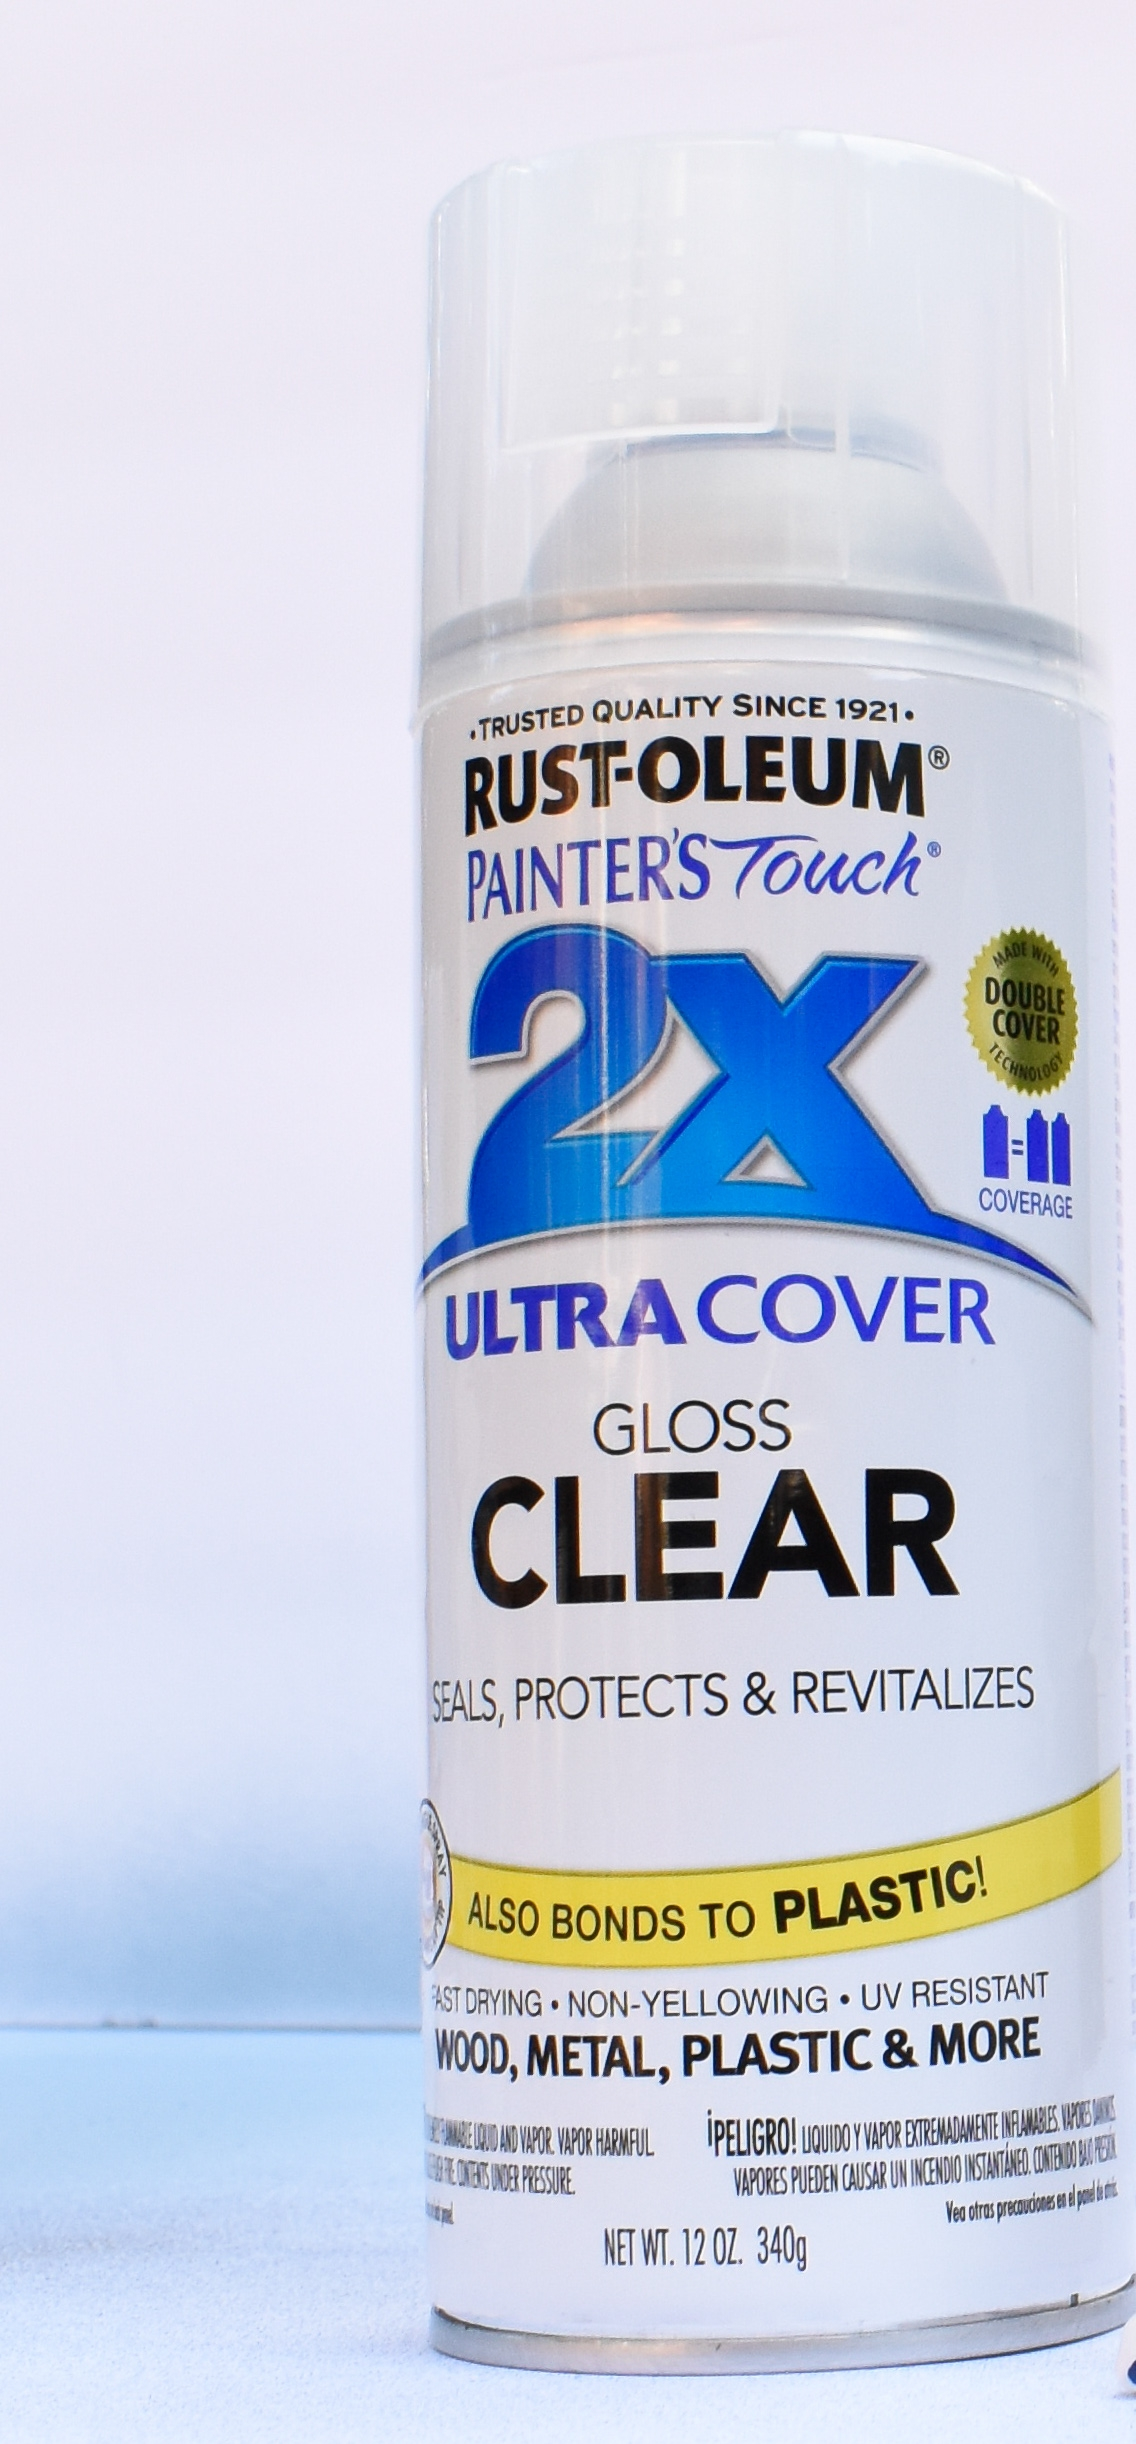 high gloss clear lacquer for professional looking finish